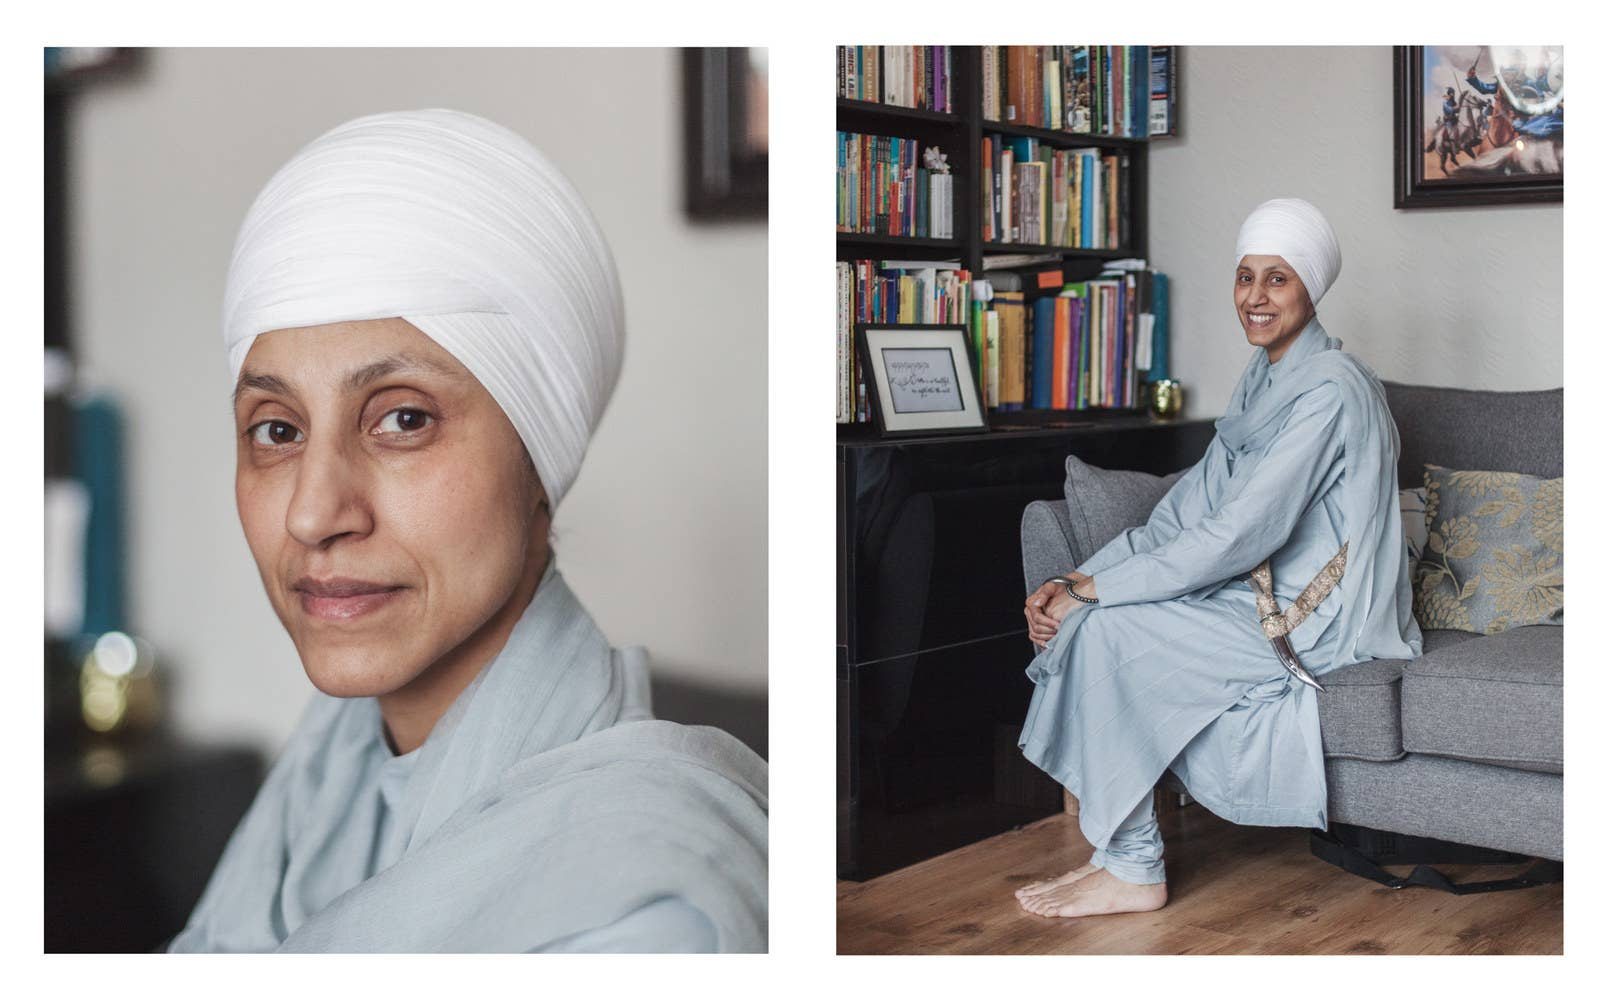 Kaur wears a pajama (a loose fitting top and trousers) 0fc19747caa